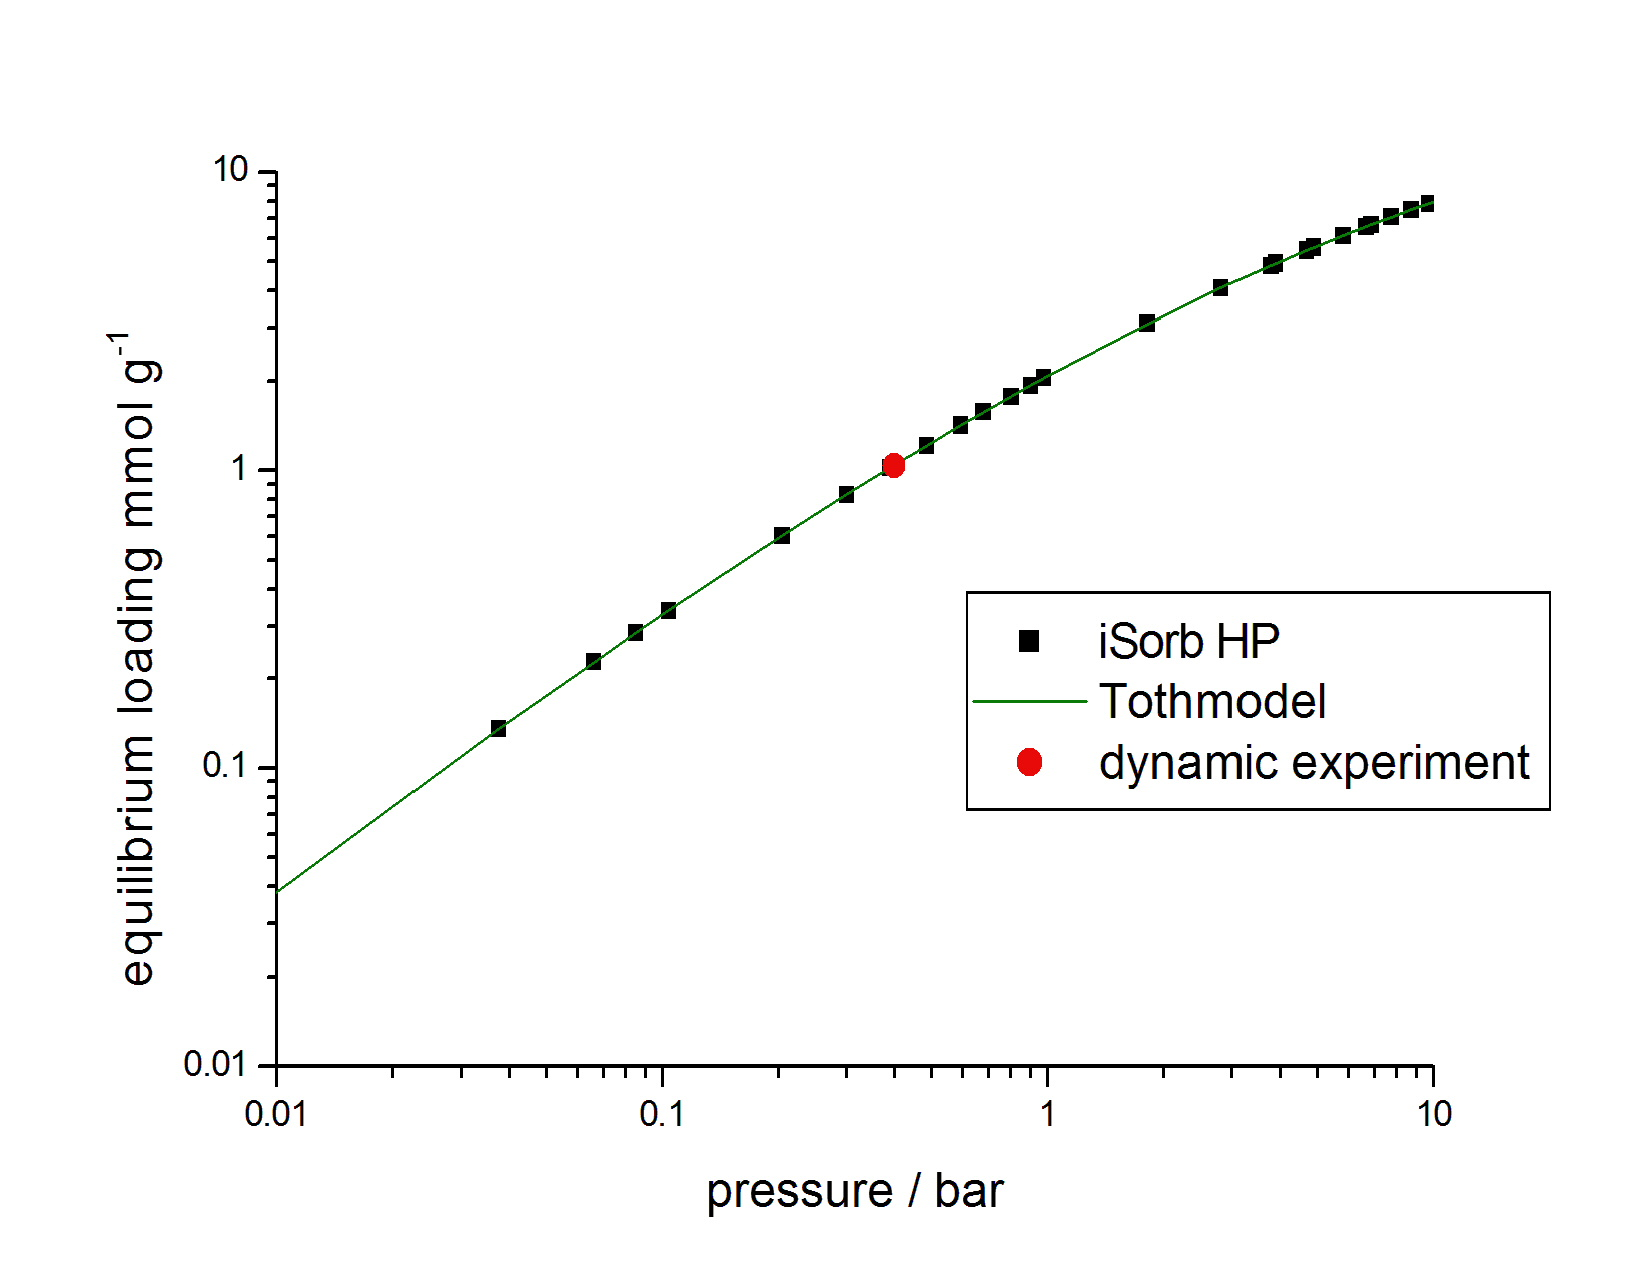 Comparison of sorption capacities determined using a volumetric method (iSorb-HP, Quantachrome), theoretical calculations and a dynamic breakthrough experiment for CO2 on activated carbon at 25 °C (dynaSorb BT, Quantachrome)